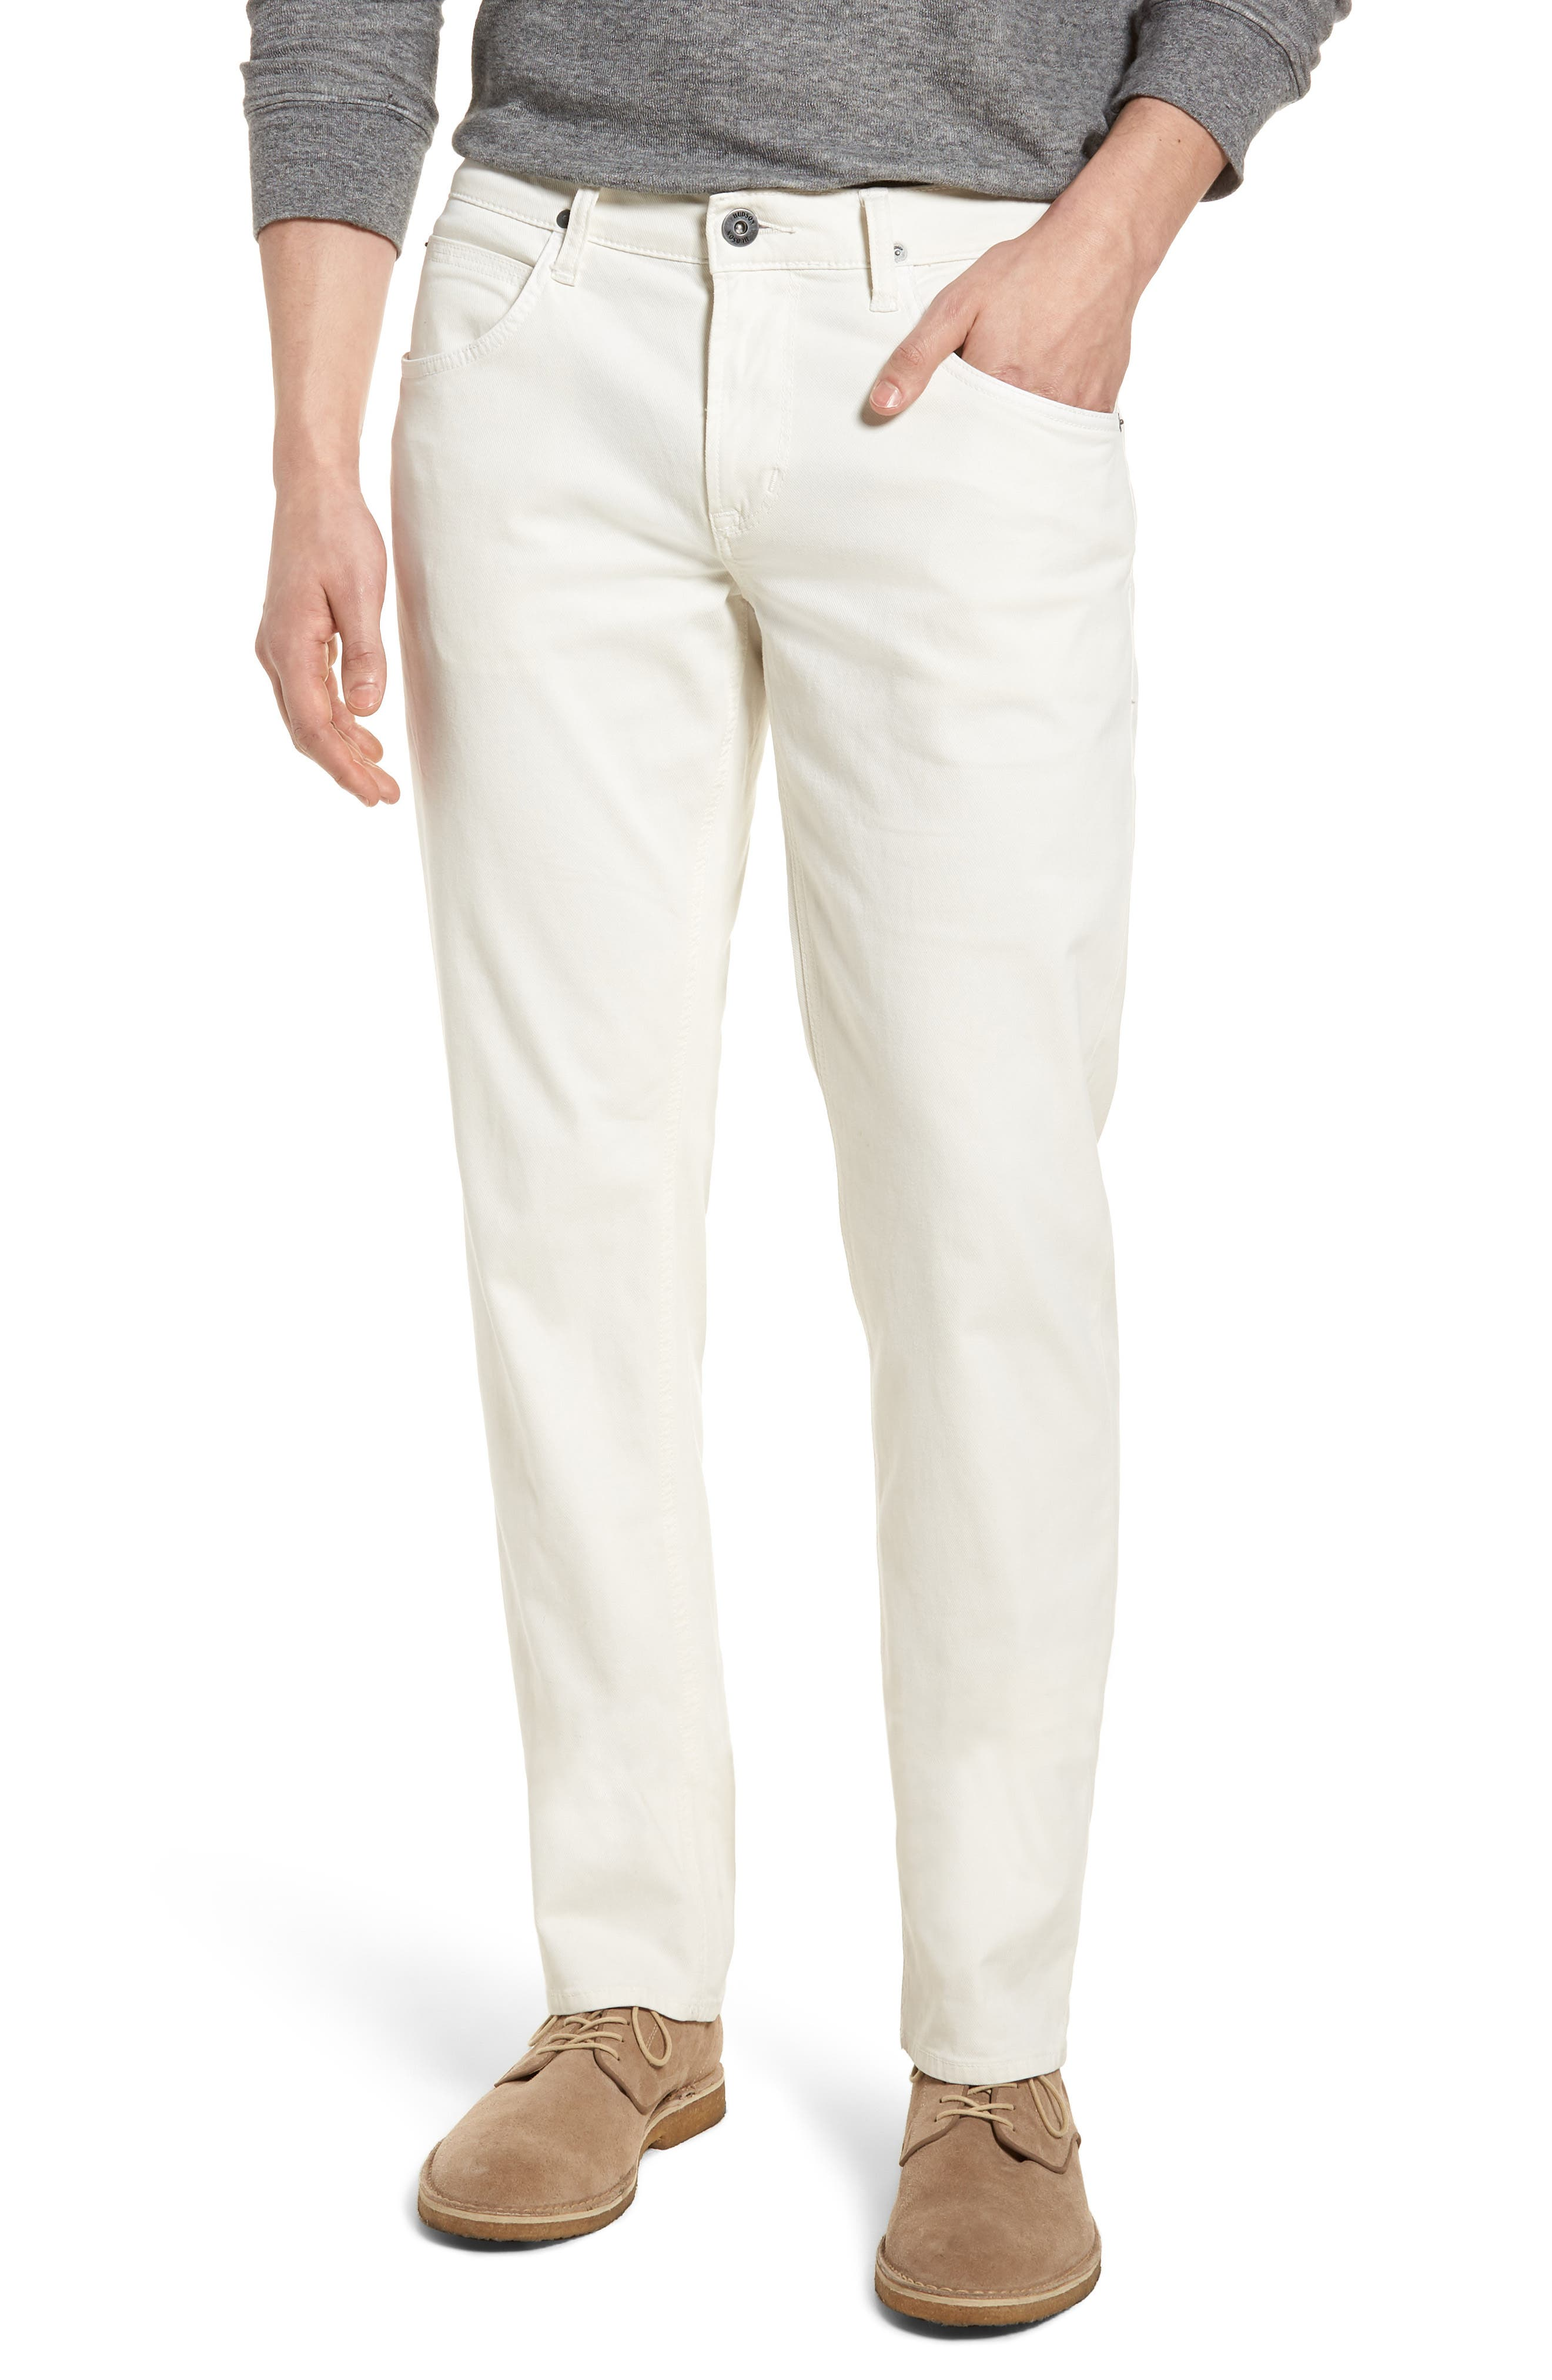 Blake Slim Fit Jeans,                         Main,                         color, Off White